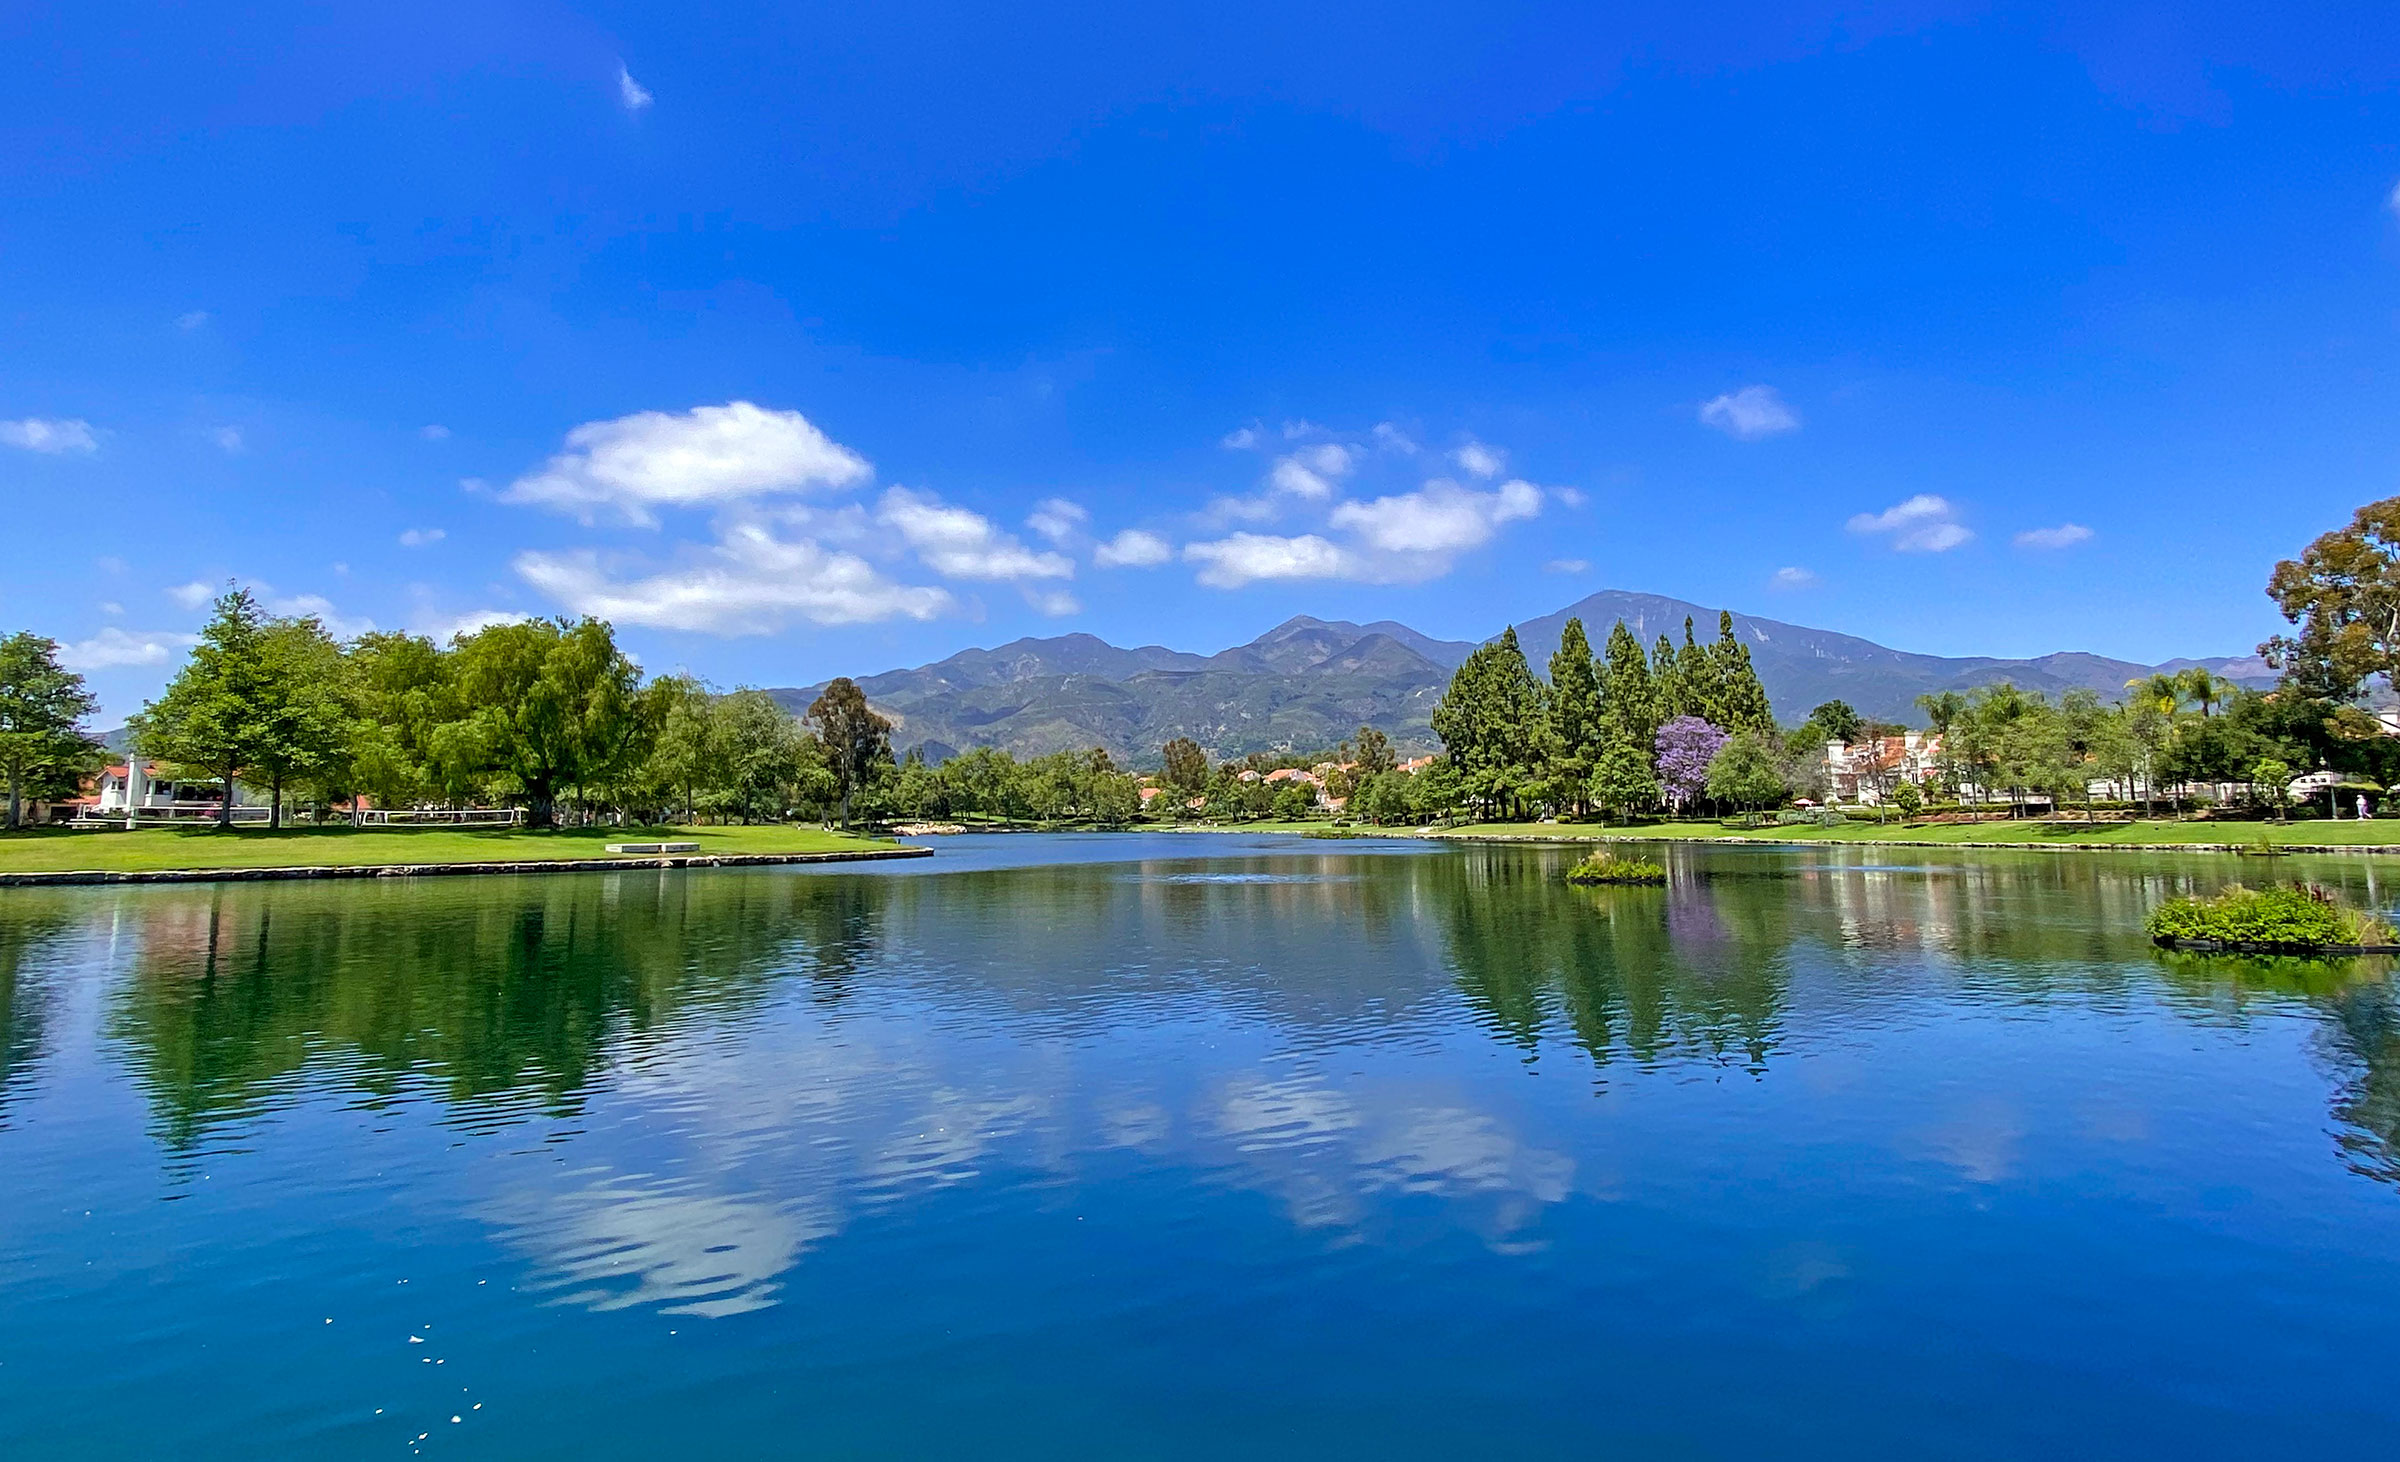 Homes in Rancho Santa Margarita Orange County Homes